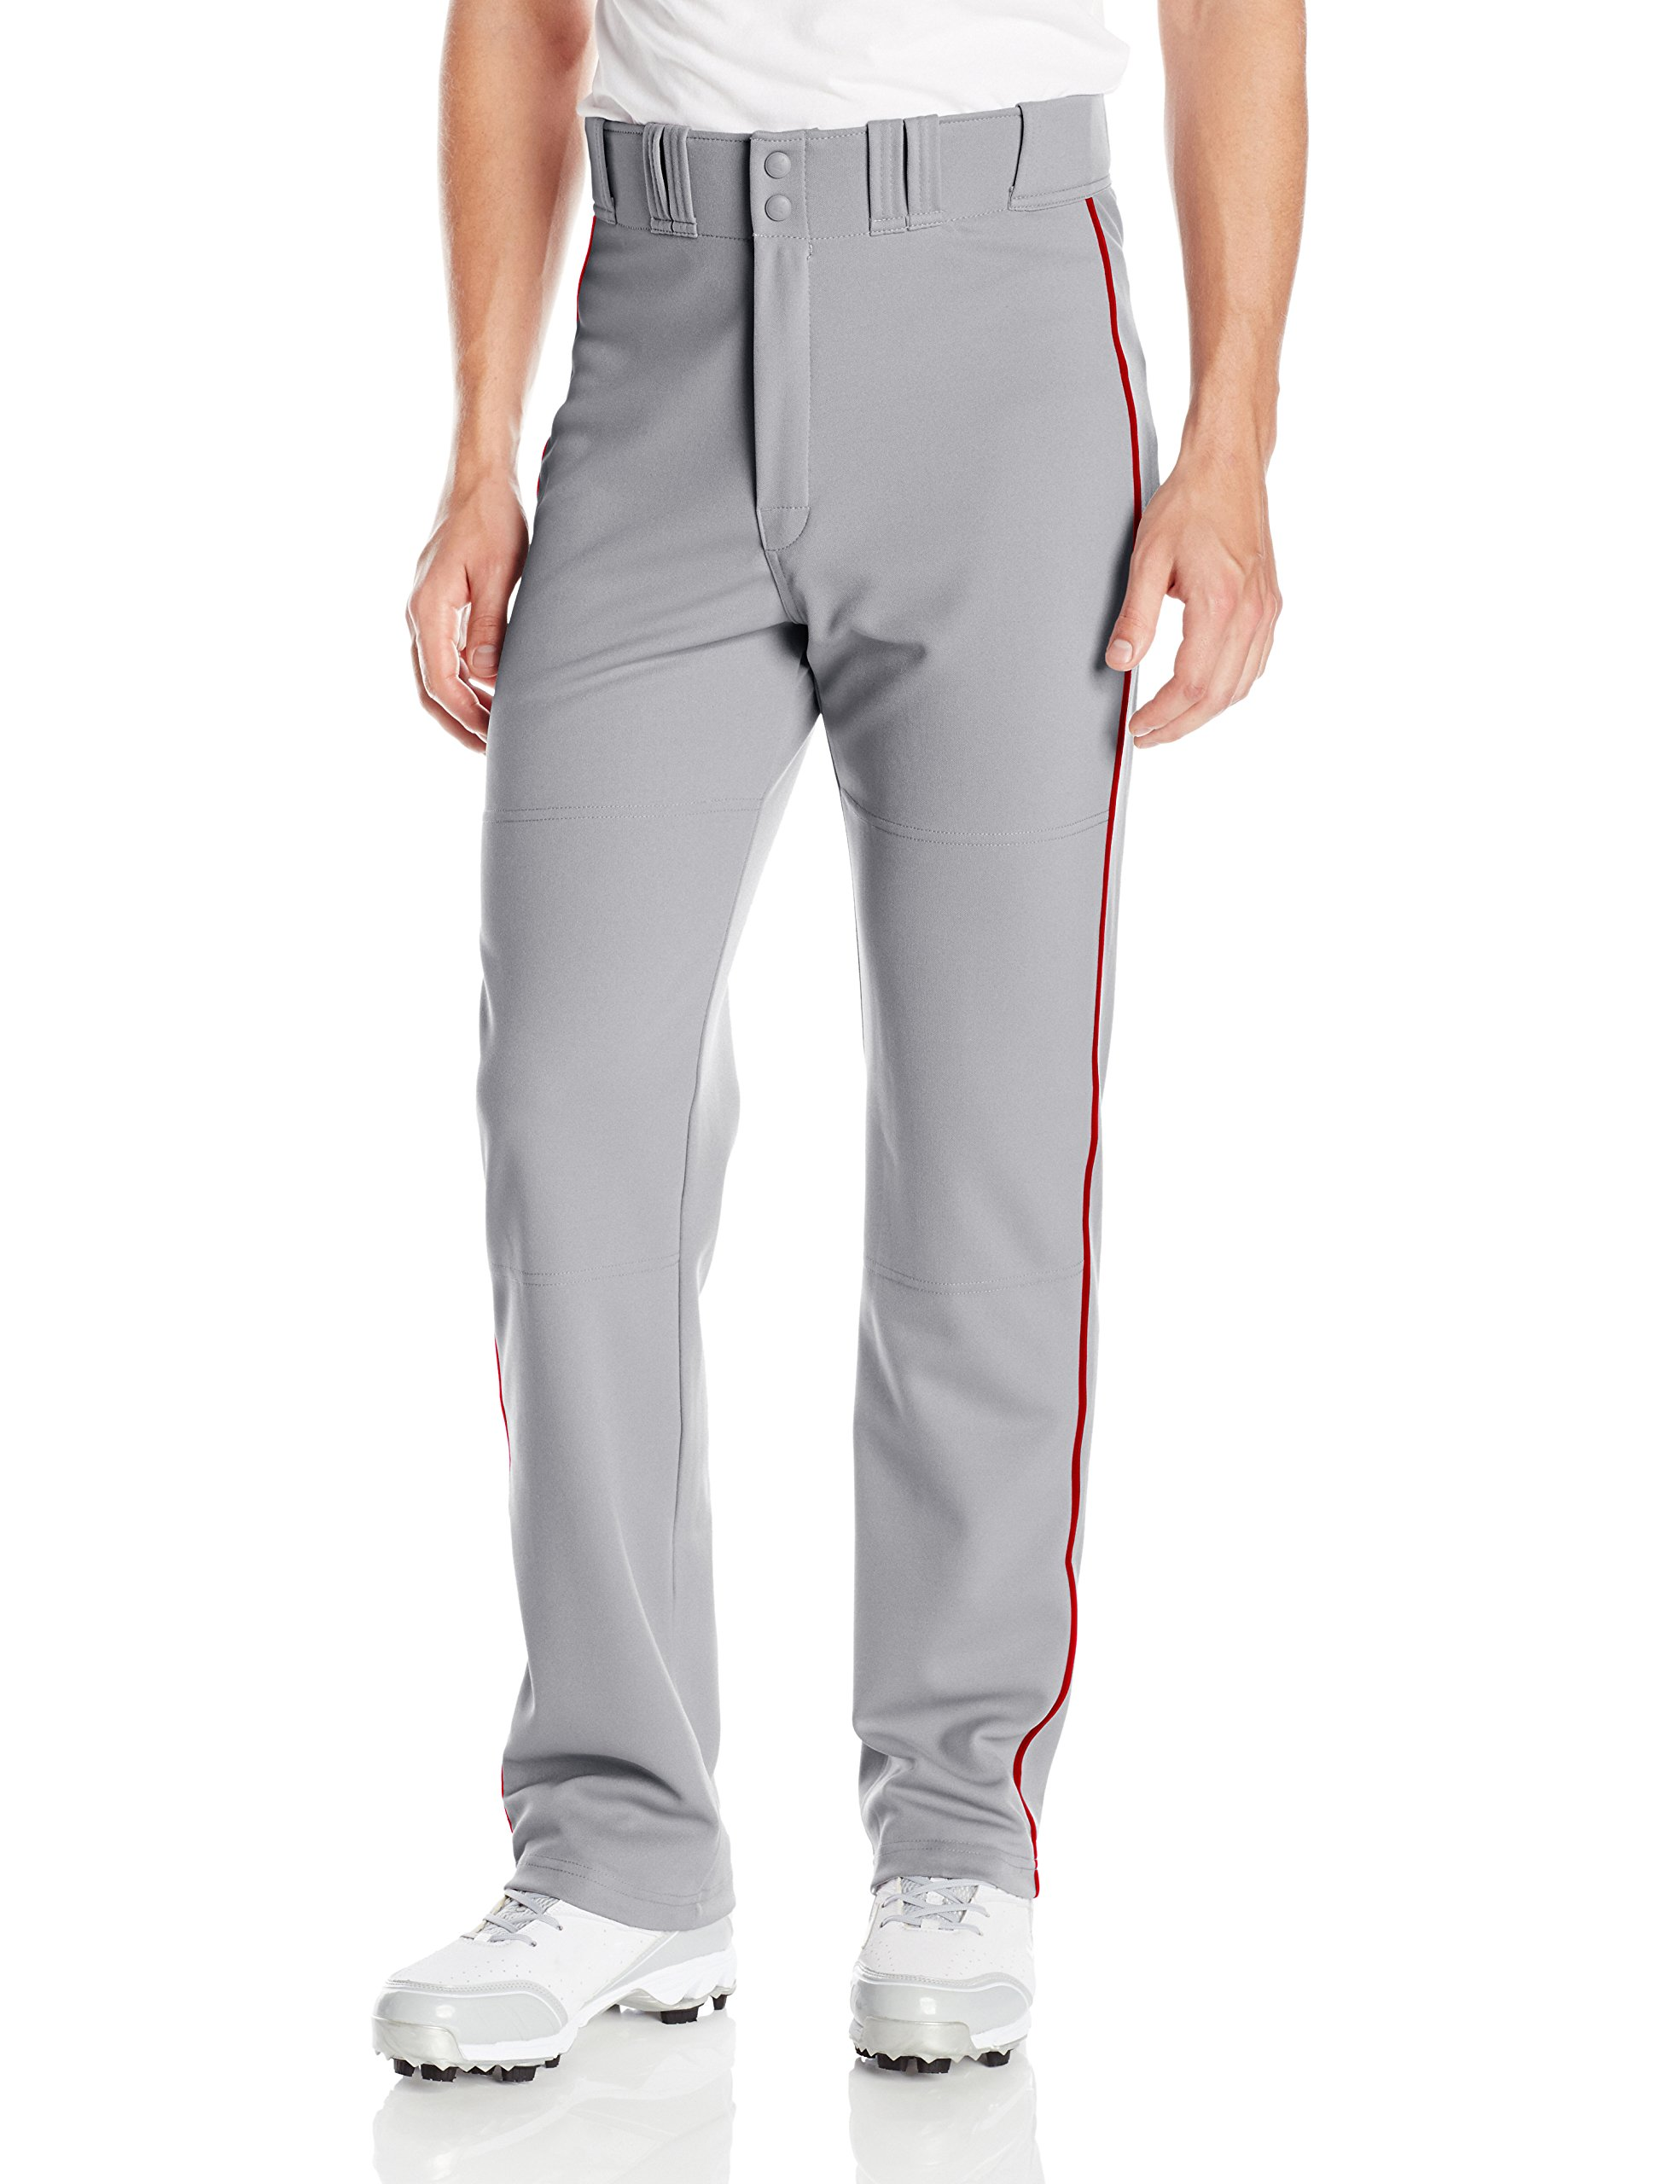 Elastic Waistband w// 2 Color Internal Easton Logo EASTON RIVAL 2 Baseball Softball Piped Pant 2020 2 Batting Glove Pockets Youth Double Reinforced Knee Piped 100/% Polyester